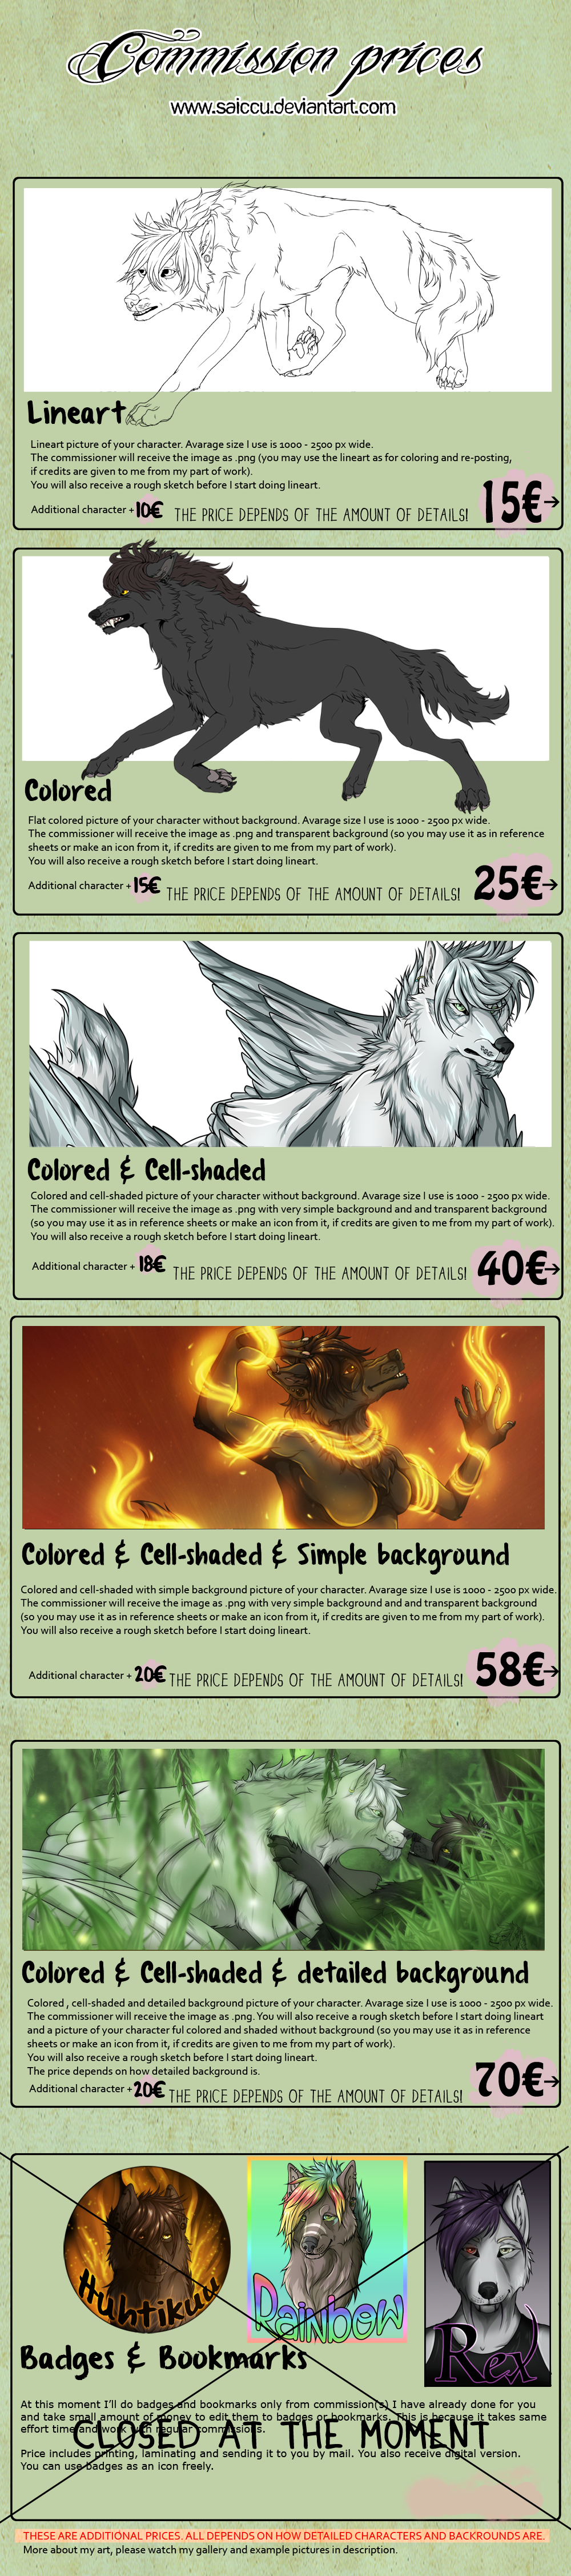 Commission pricelist and info - updated 2.5.2018 by Saiccu